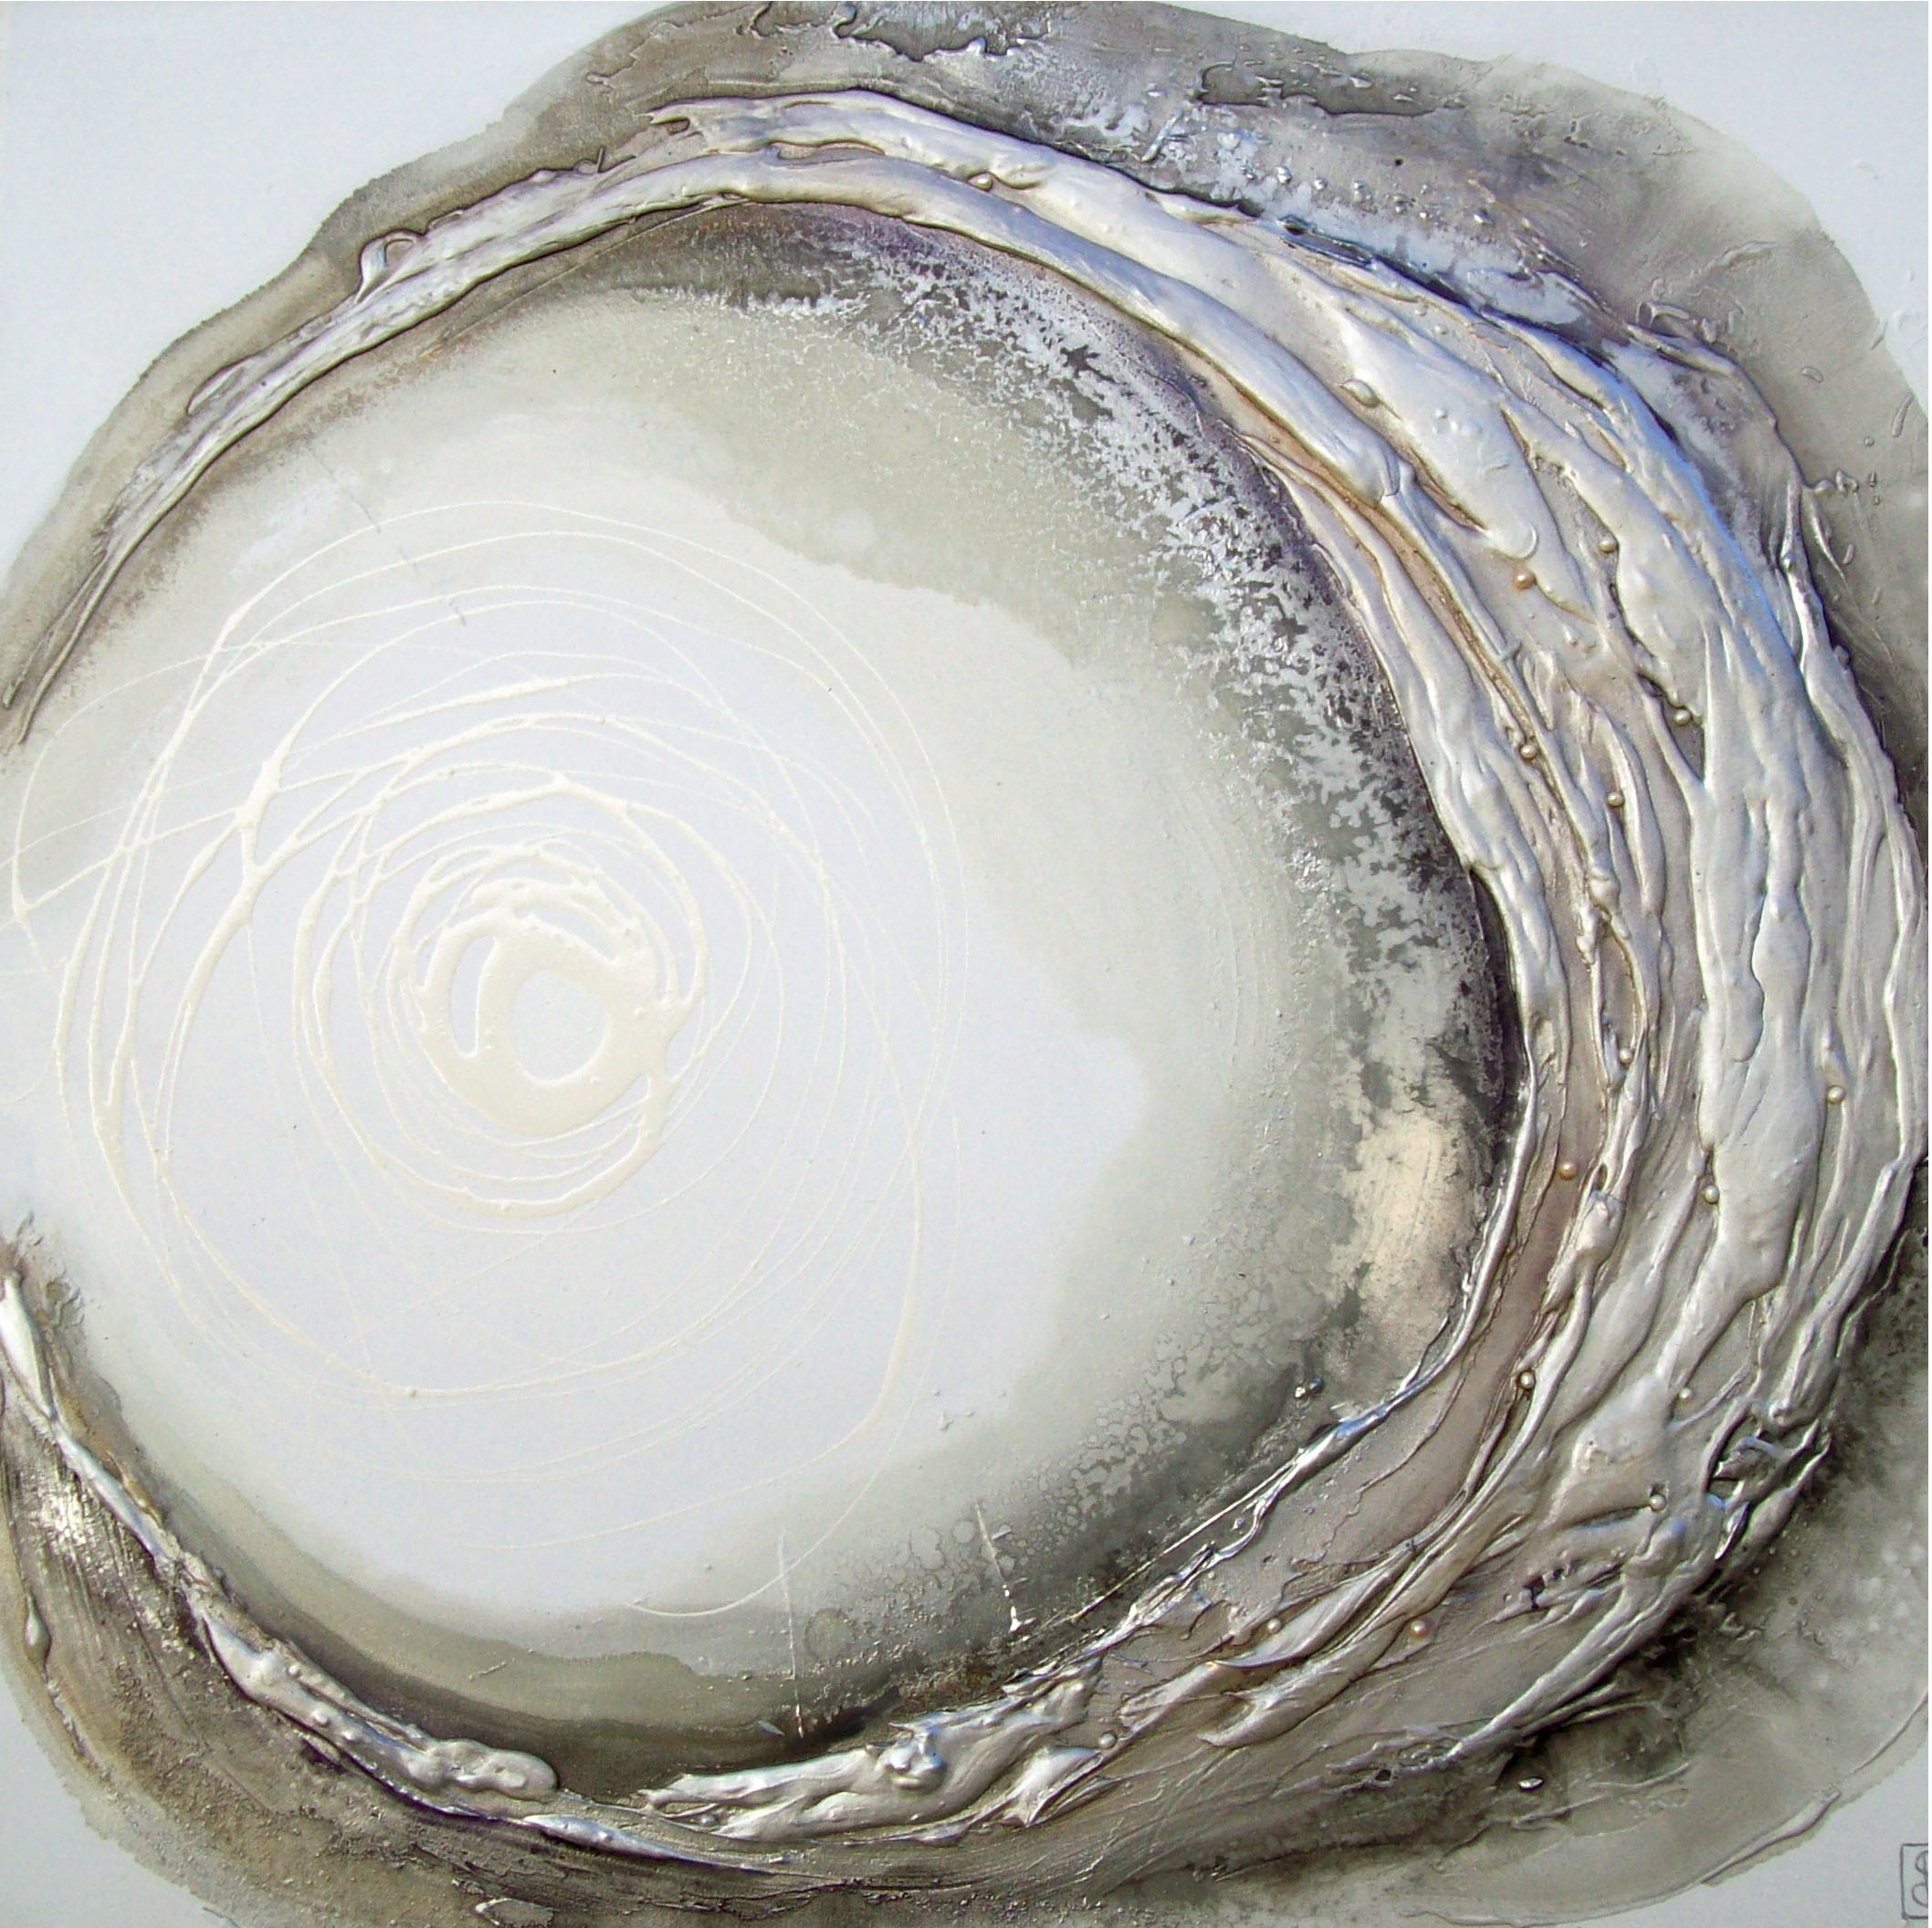 Vicky Sanders Oyster Series - White Oyster #1